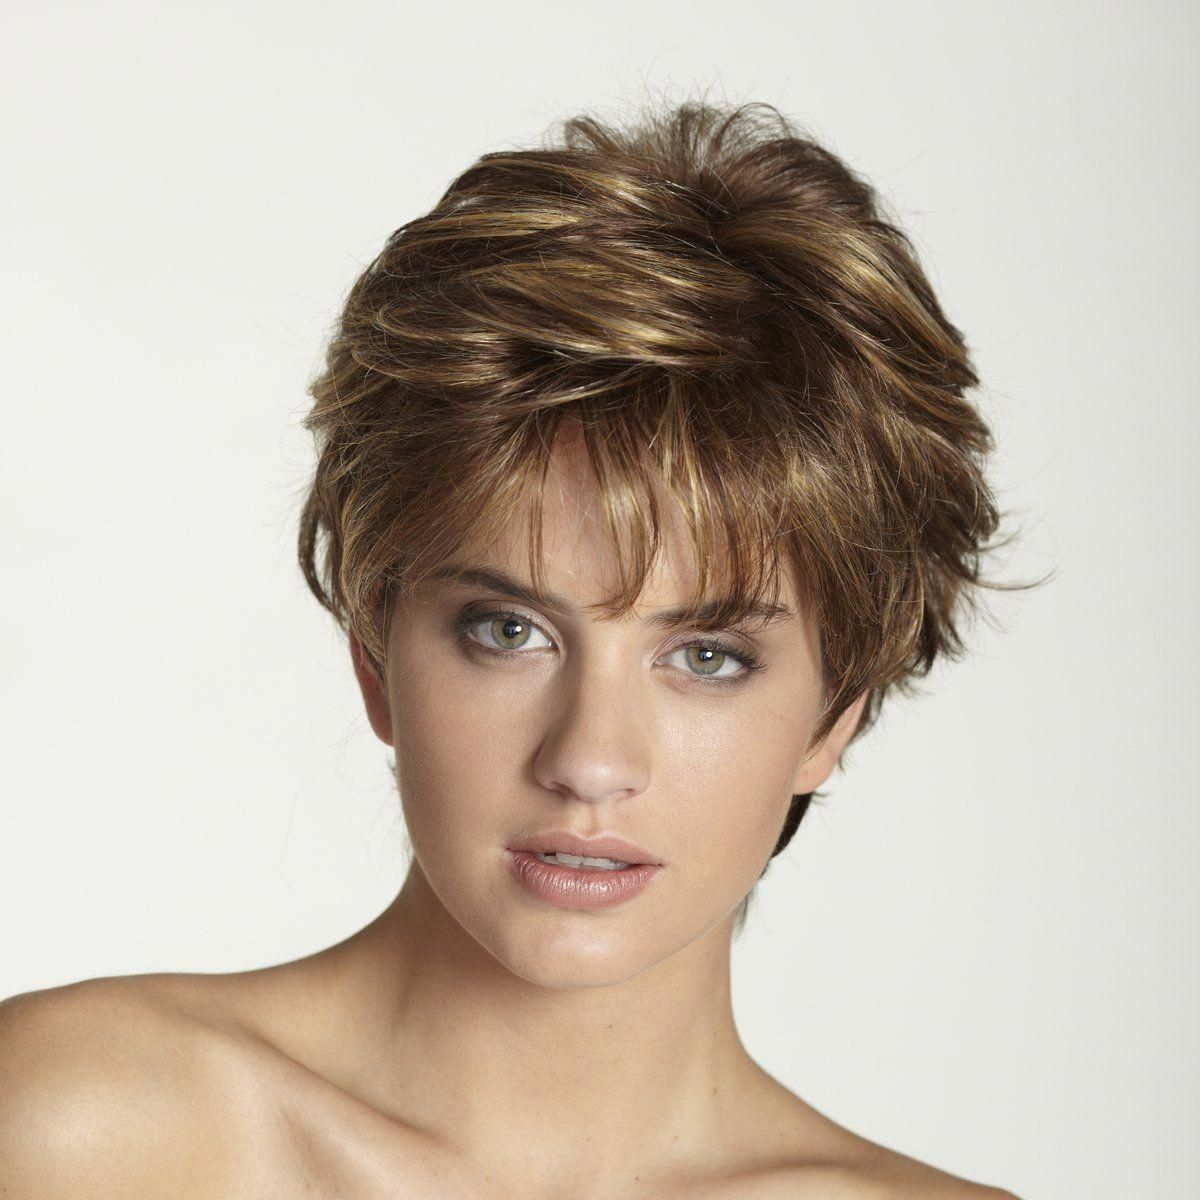 wig features: monofilament top short, straight, layered wig